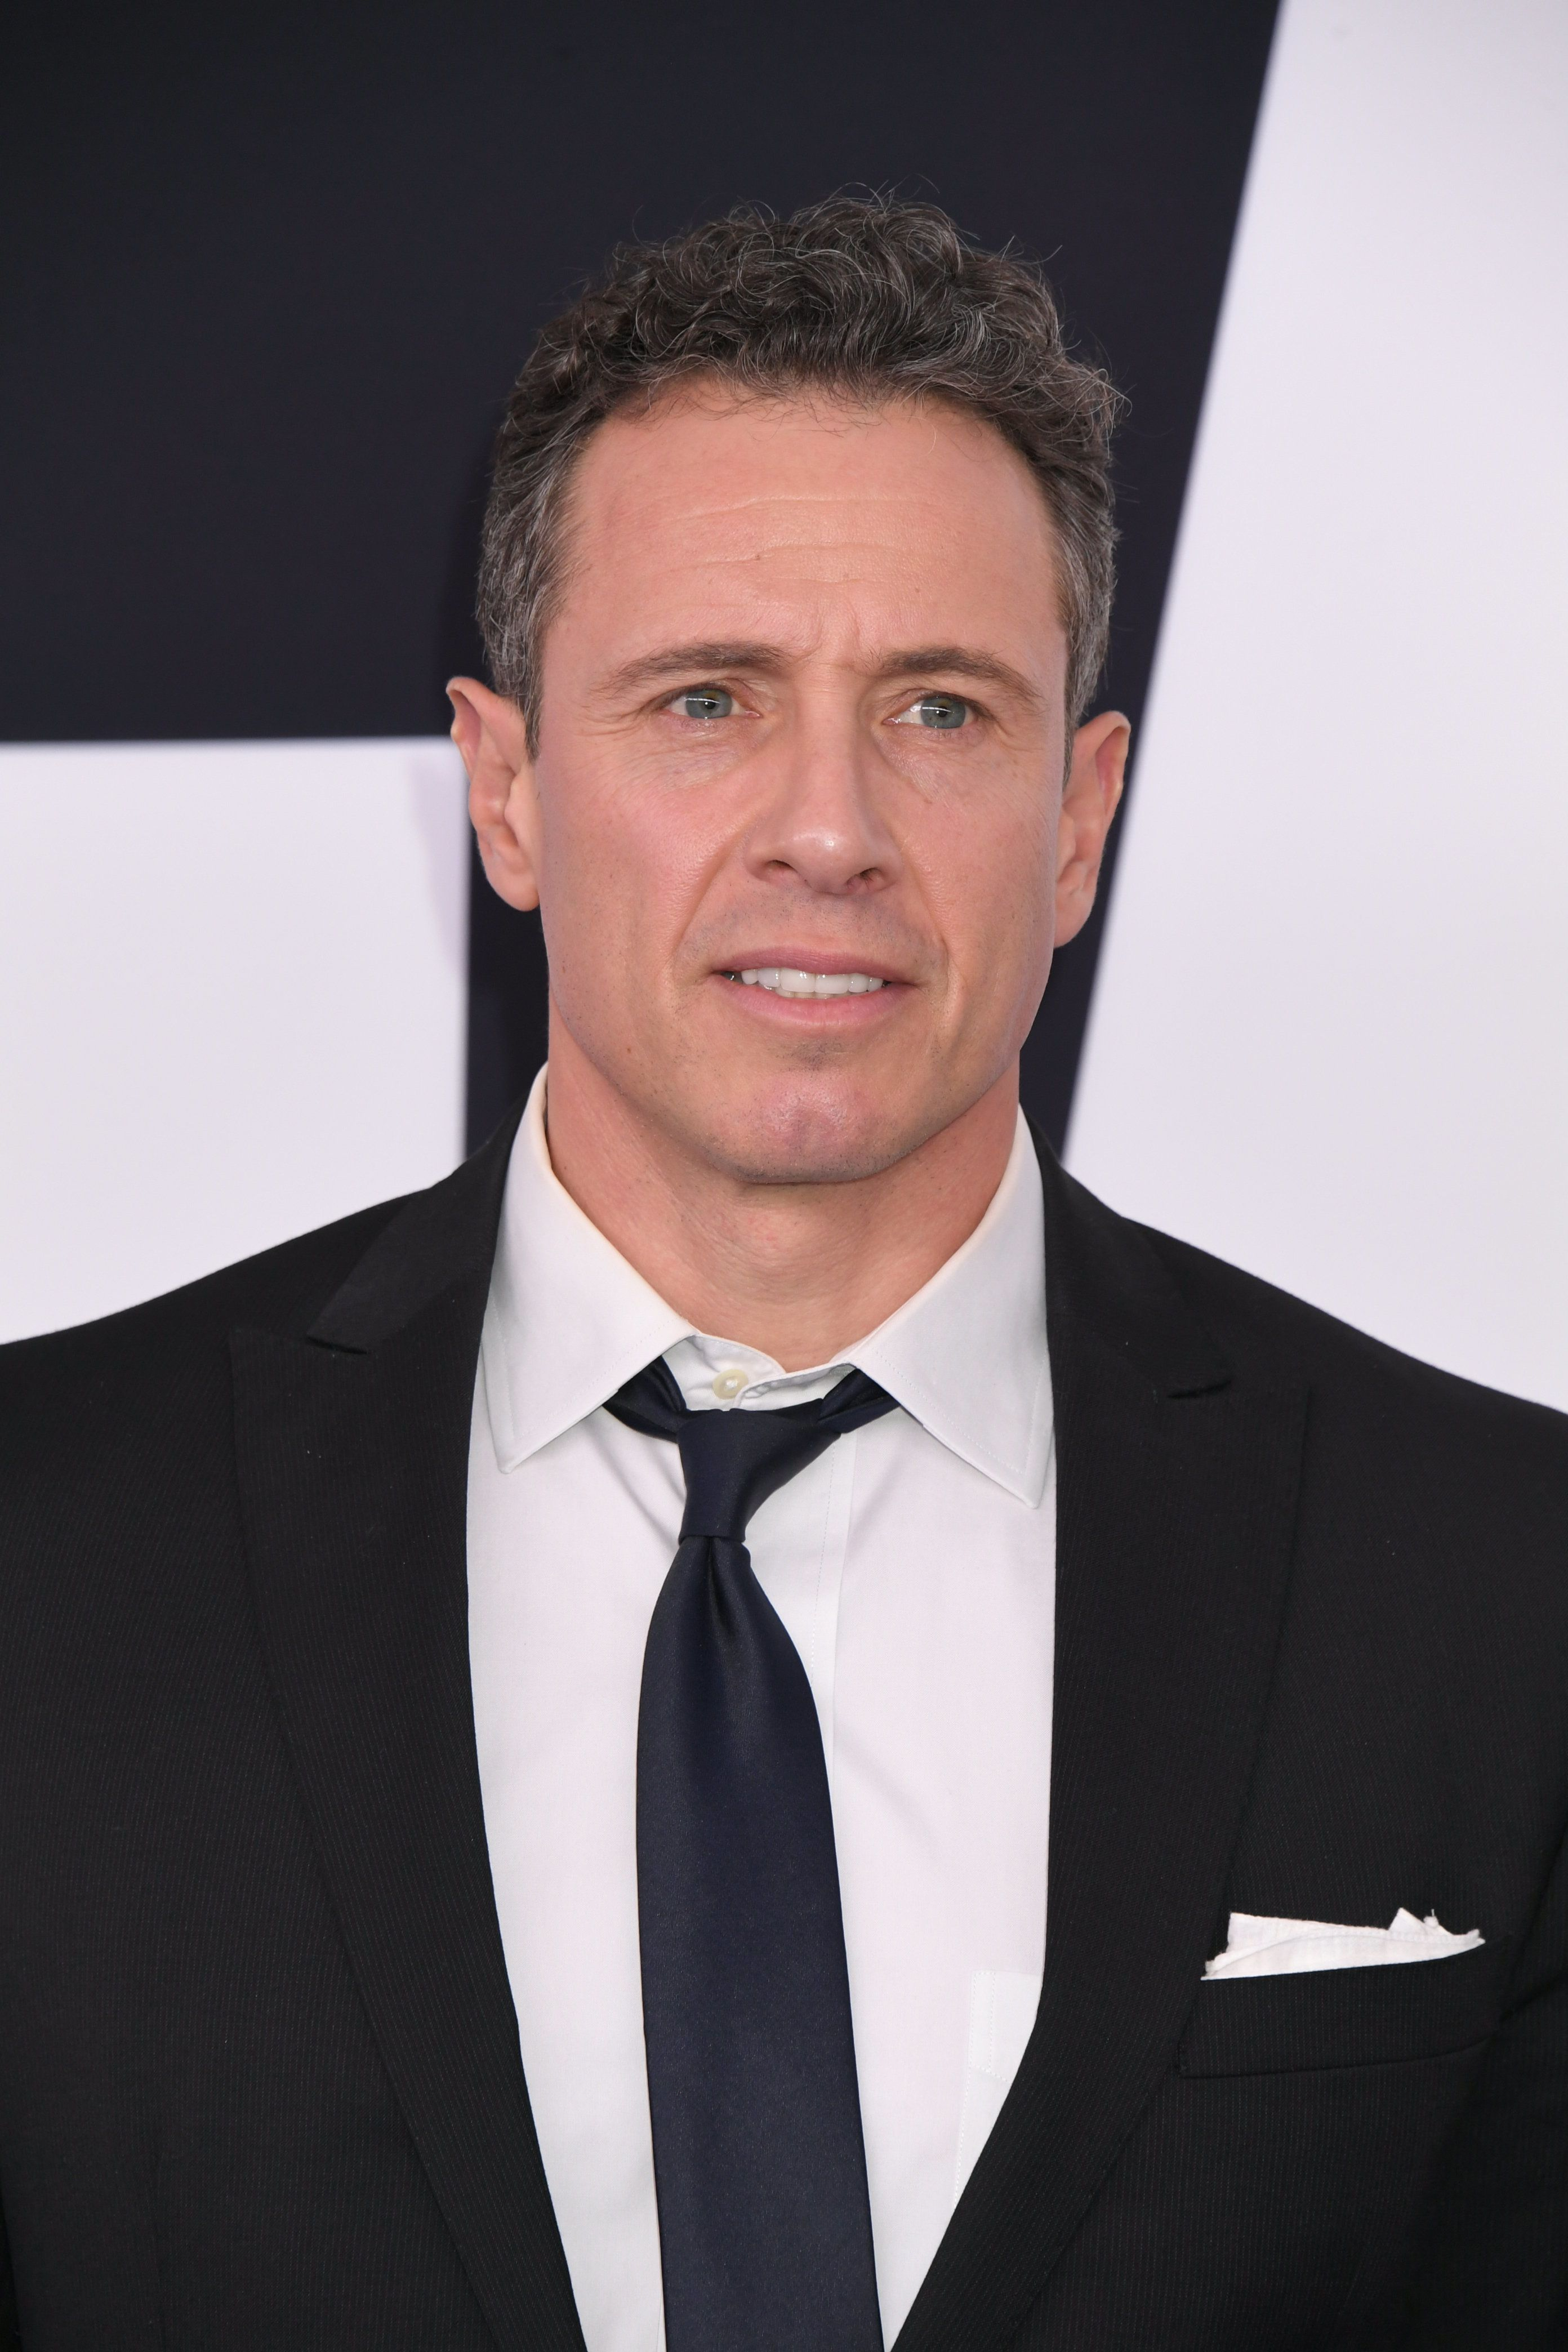 Chris Cuomo arrives to the 2017 Turner Upfront, held at Madison Square Garden in New York City, Wednesday, May 17, 2017. (Photo by Elise Leclerc) *** Please Use Credit from Credit Field ***